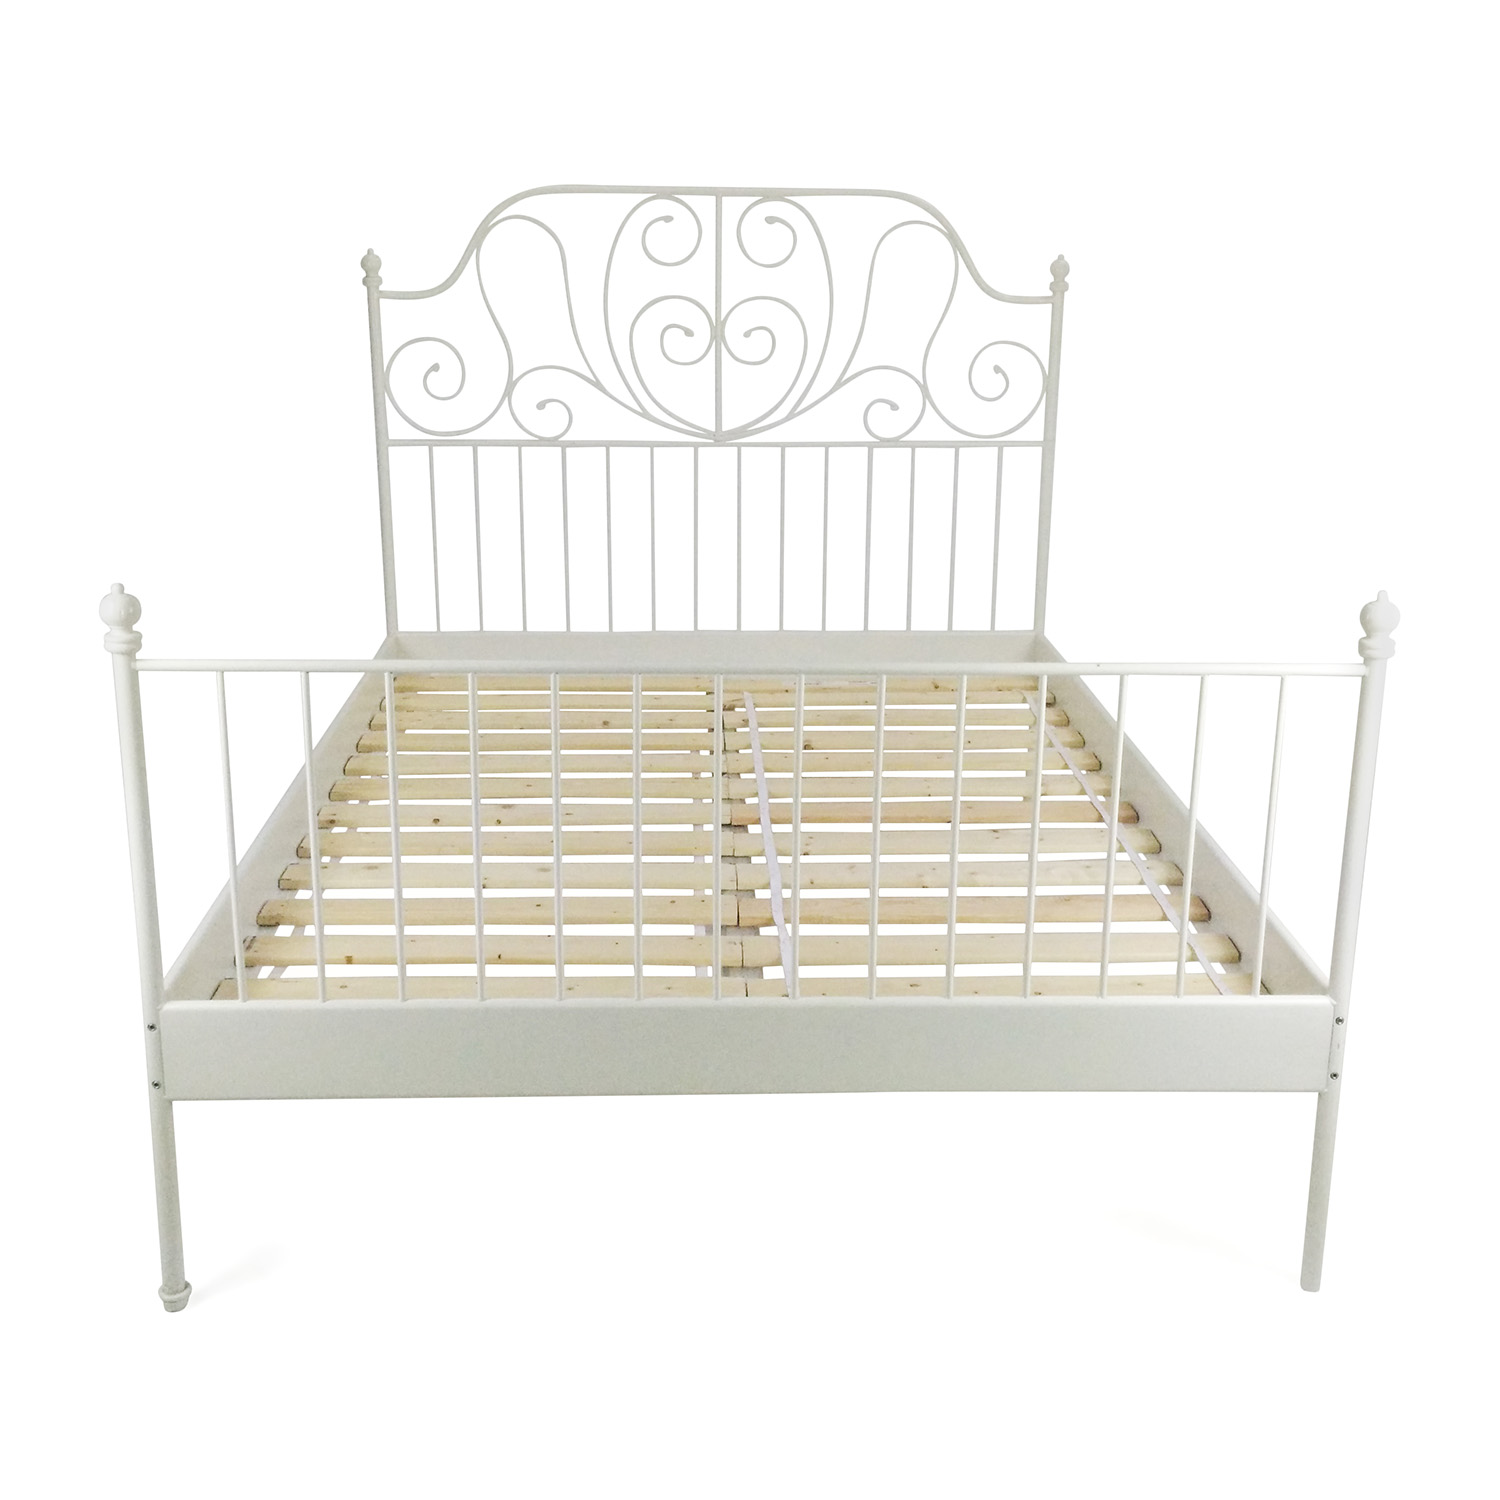 Queen Size Beds For Sale 69 Off Macy 39s Macy 39s Queen Size Bed Frame Beds